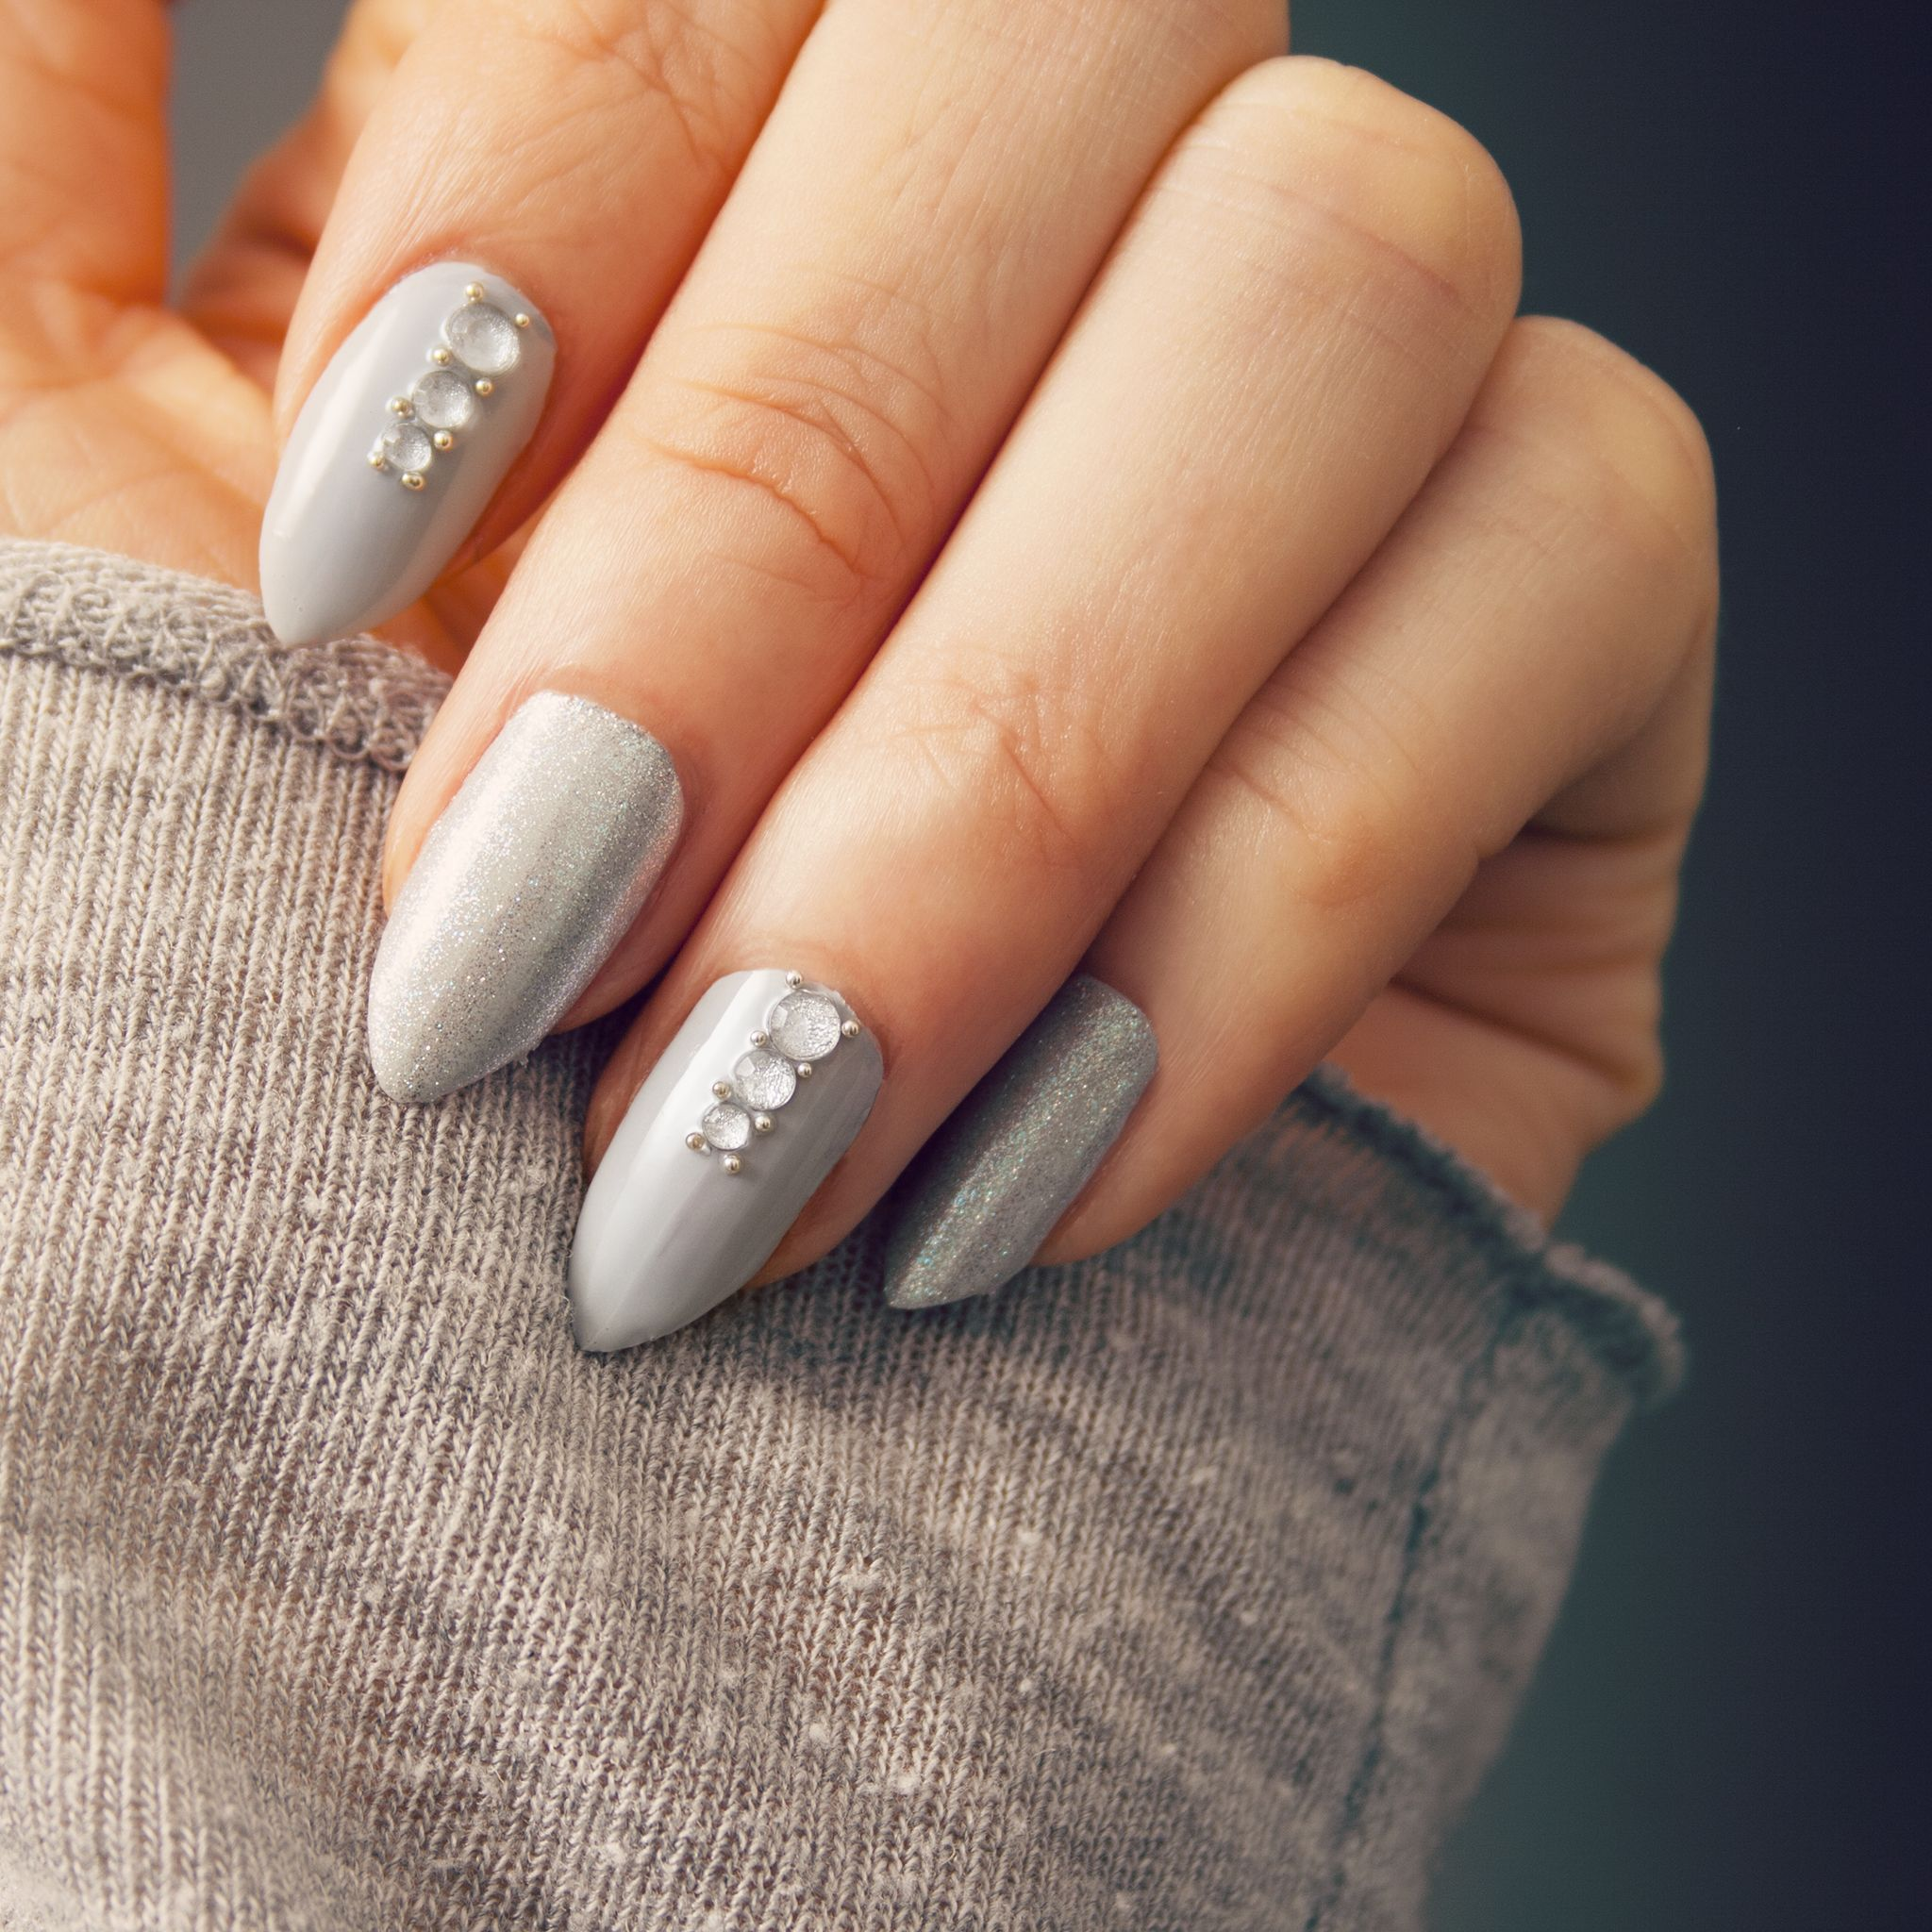 Grey Crystal Nails Nail Art Tutorial A Very Easy Wich You Create With Rhinestones Glamnails